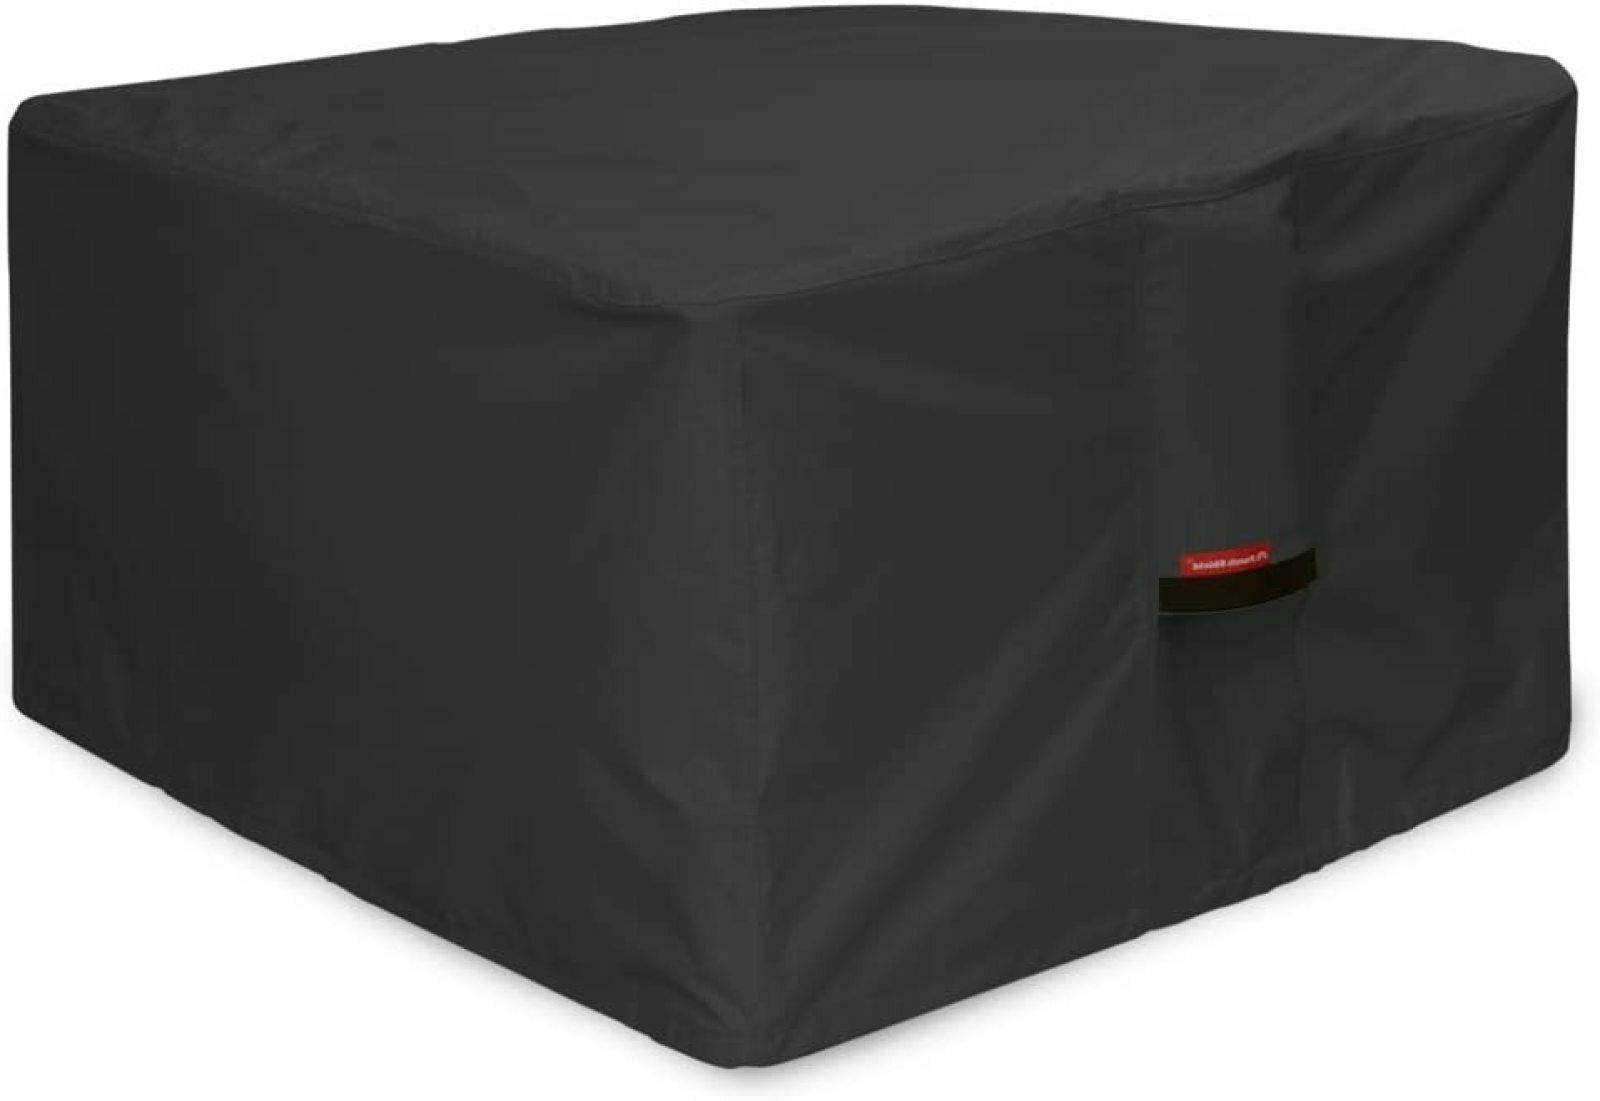 Square Patio Fire Pit Table Cover Waterproof Heavy Duty Full